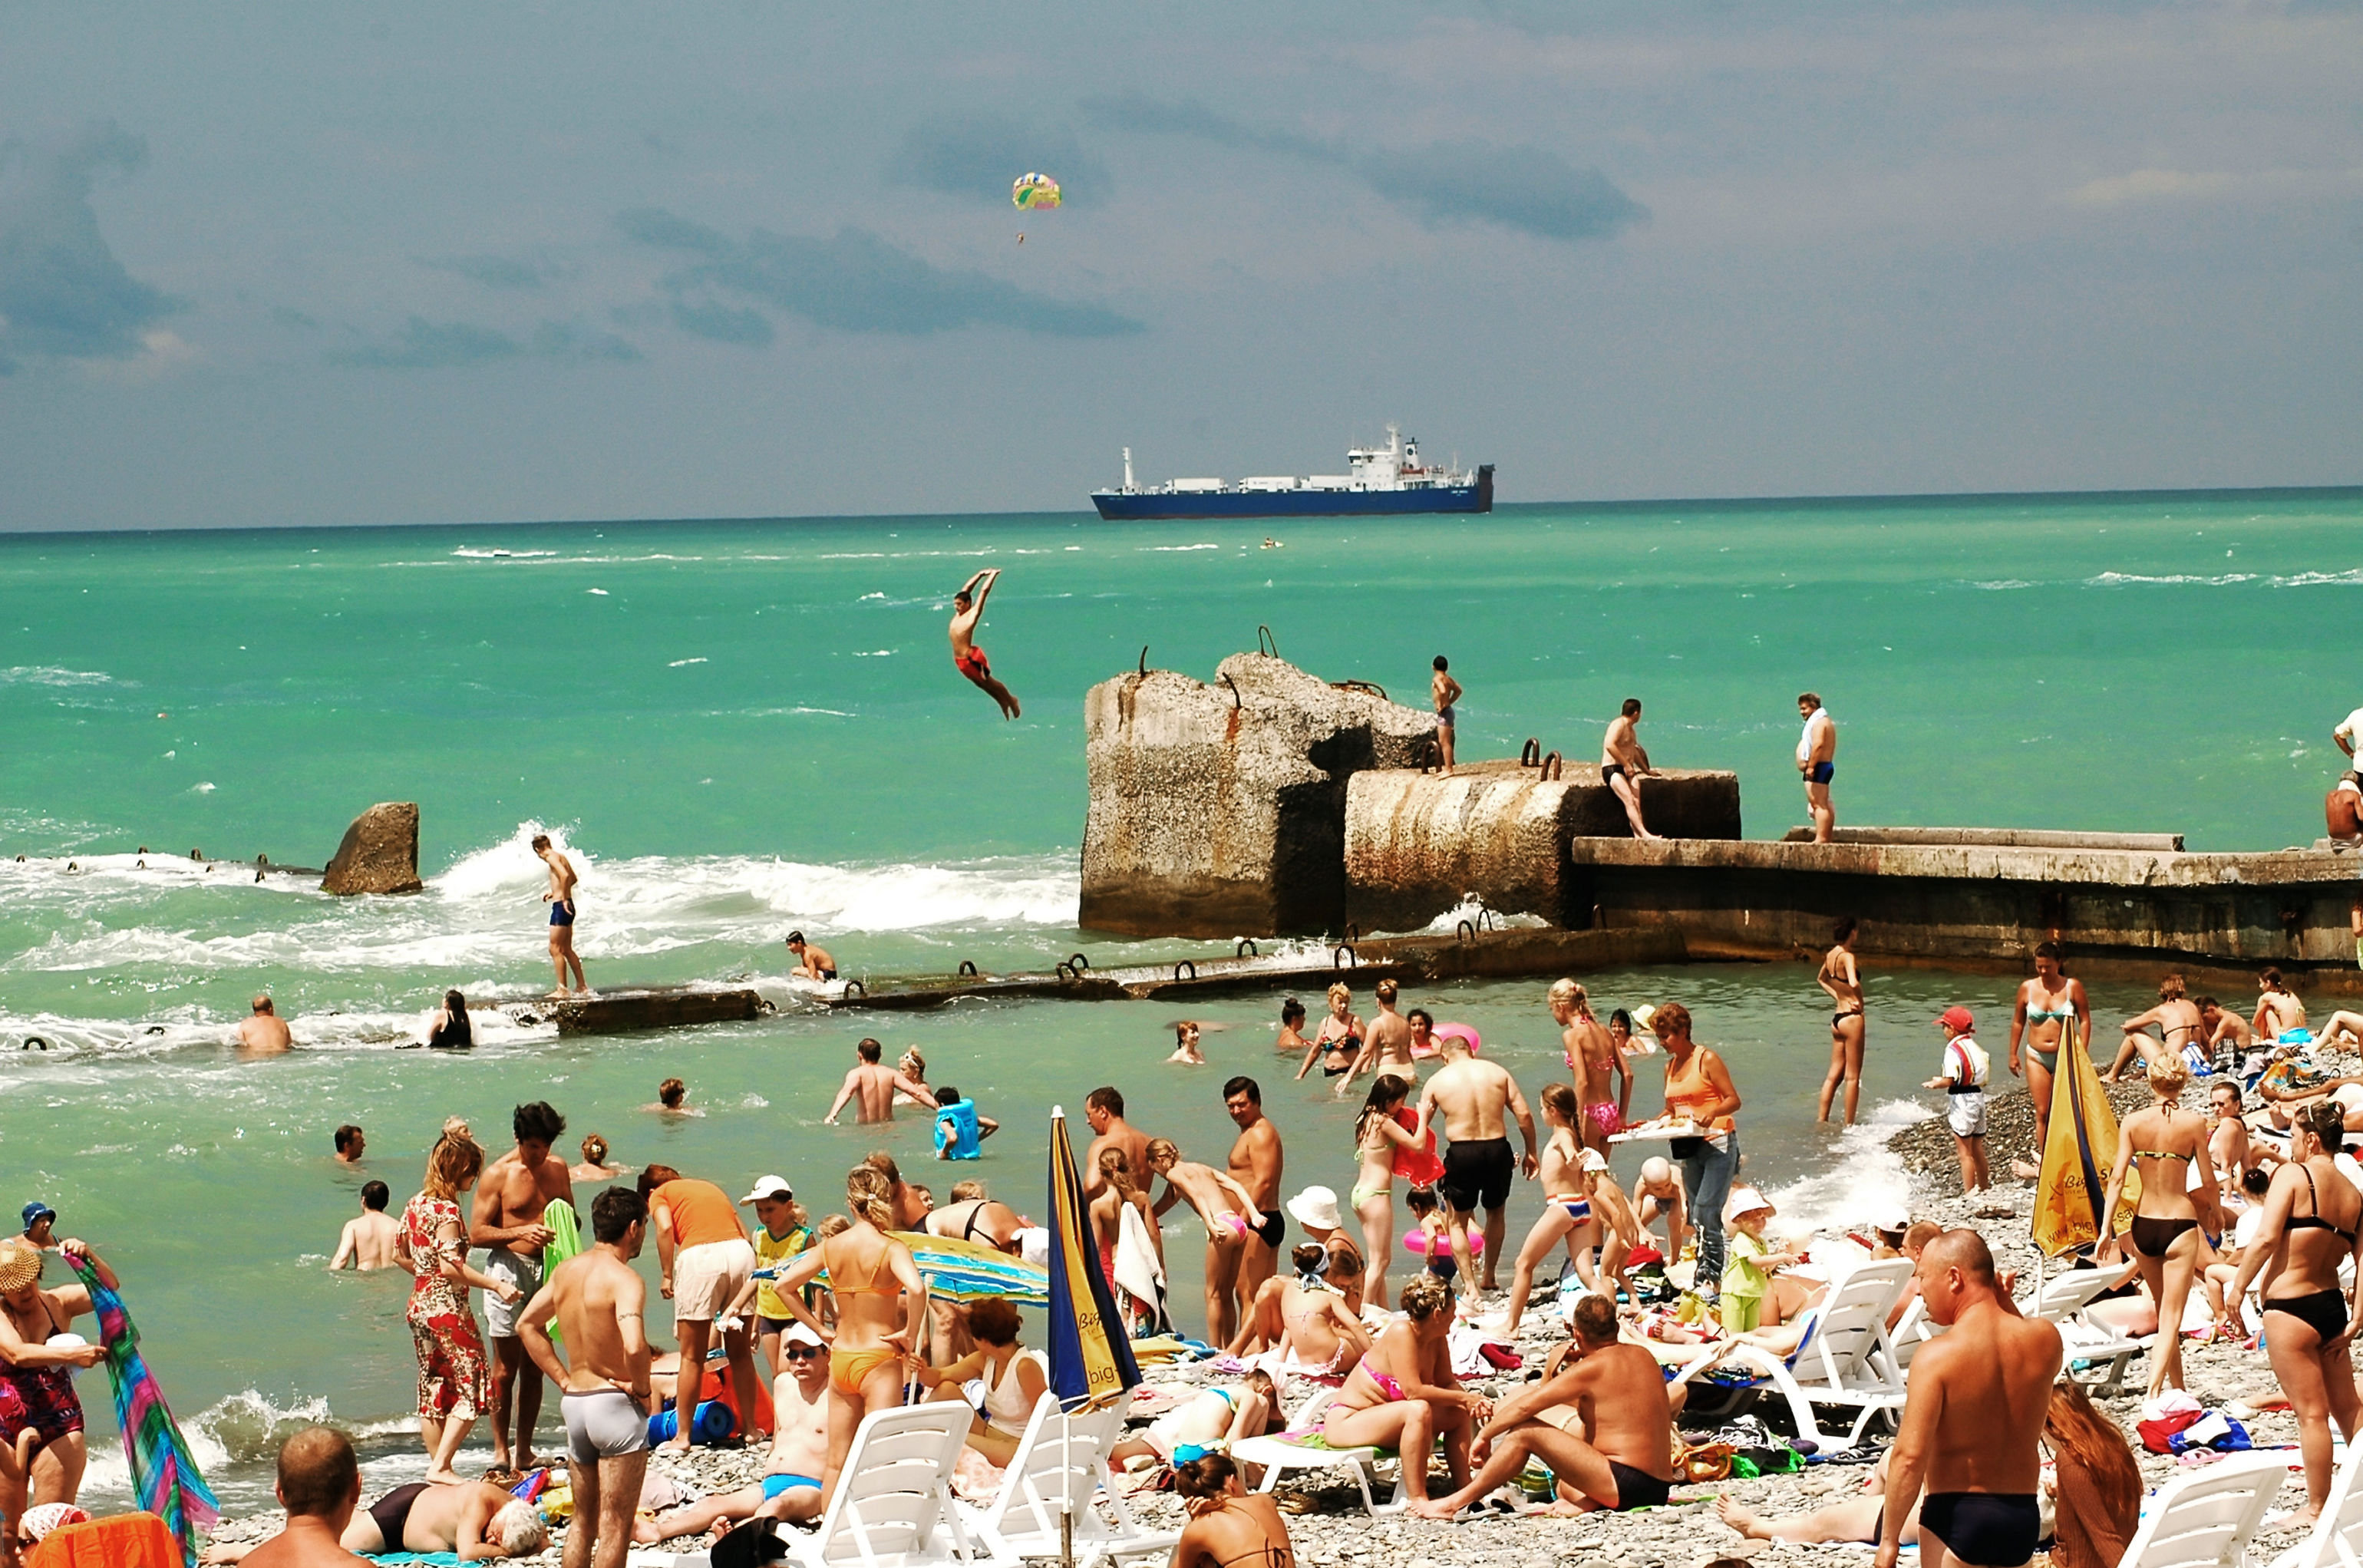 Holiday-makers on the beach in Sochi.